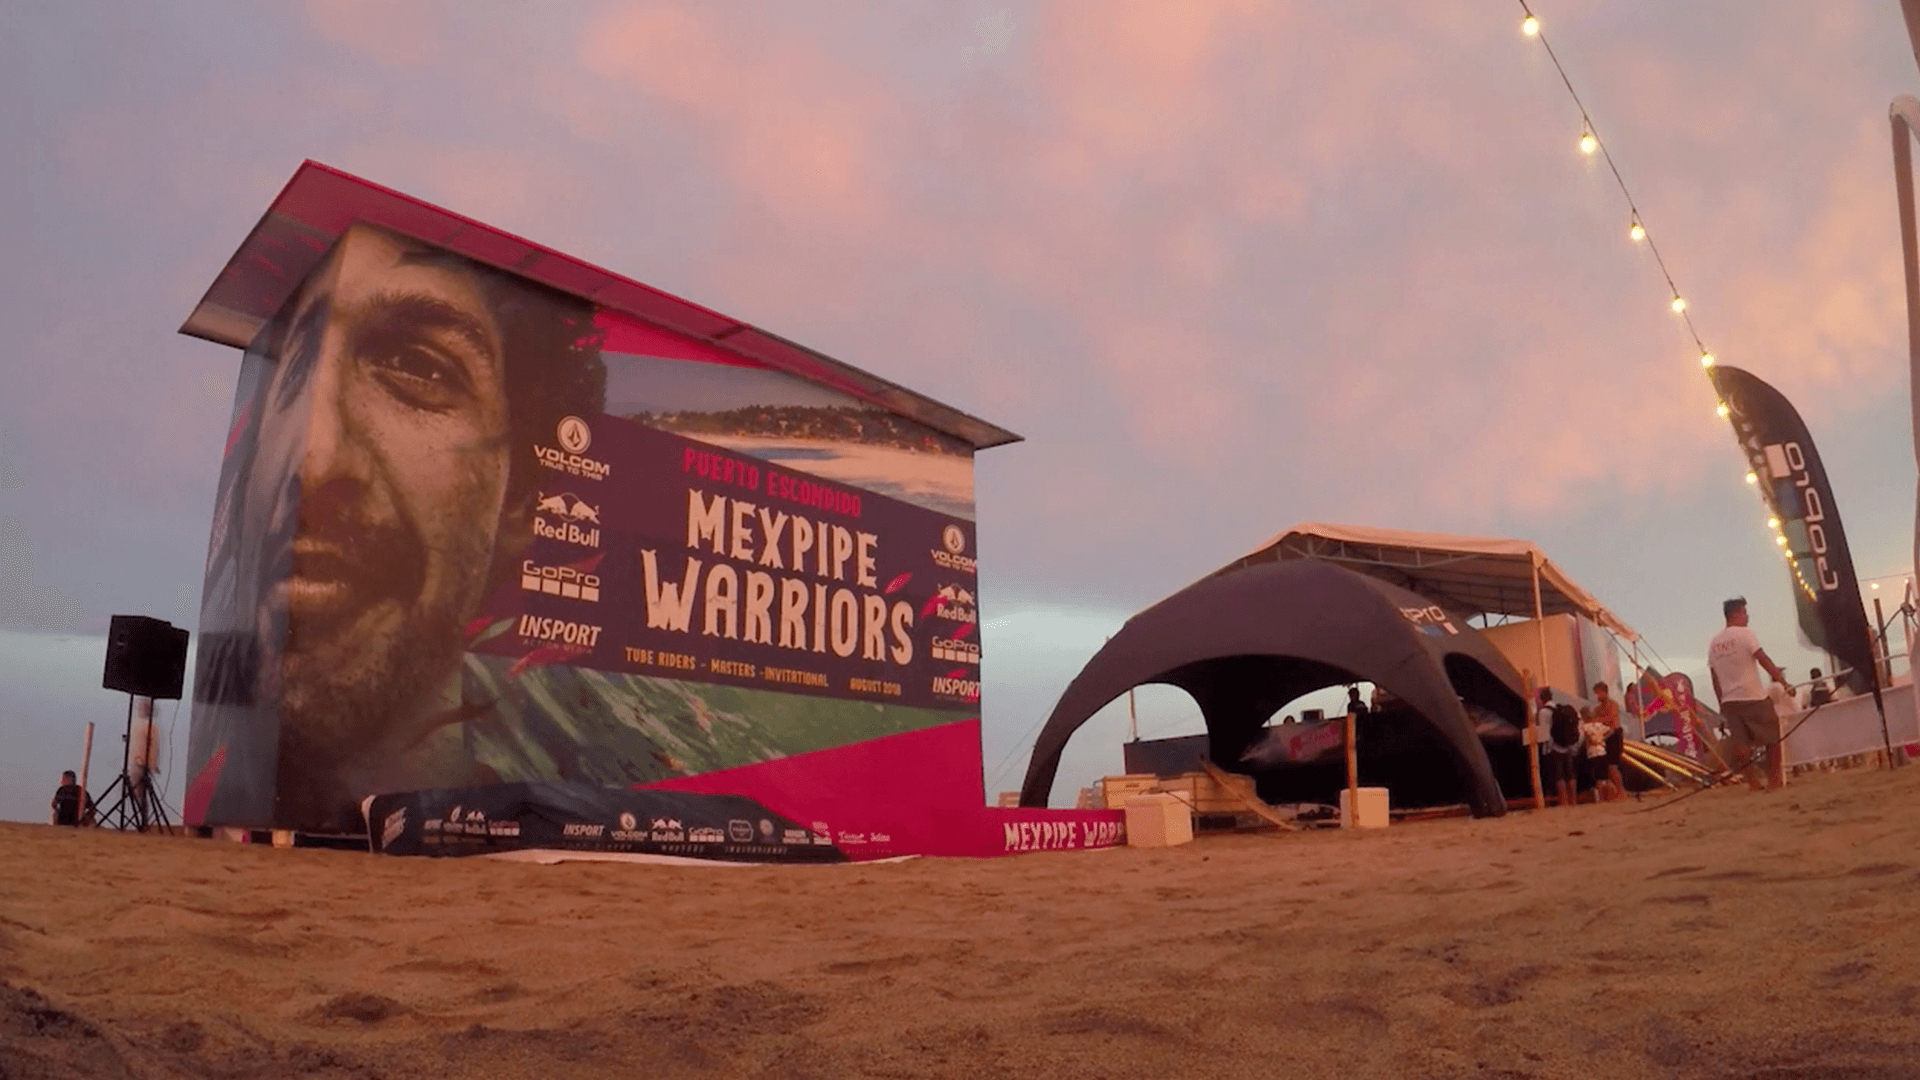 Insport - Mexpipe Warriors 2018